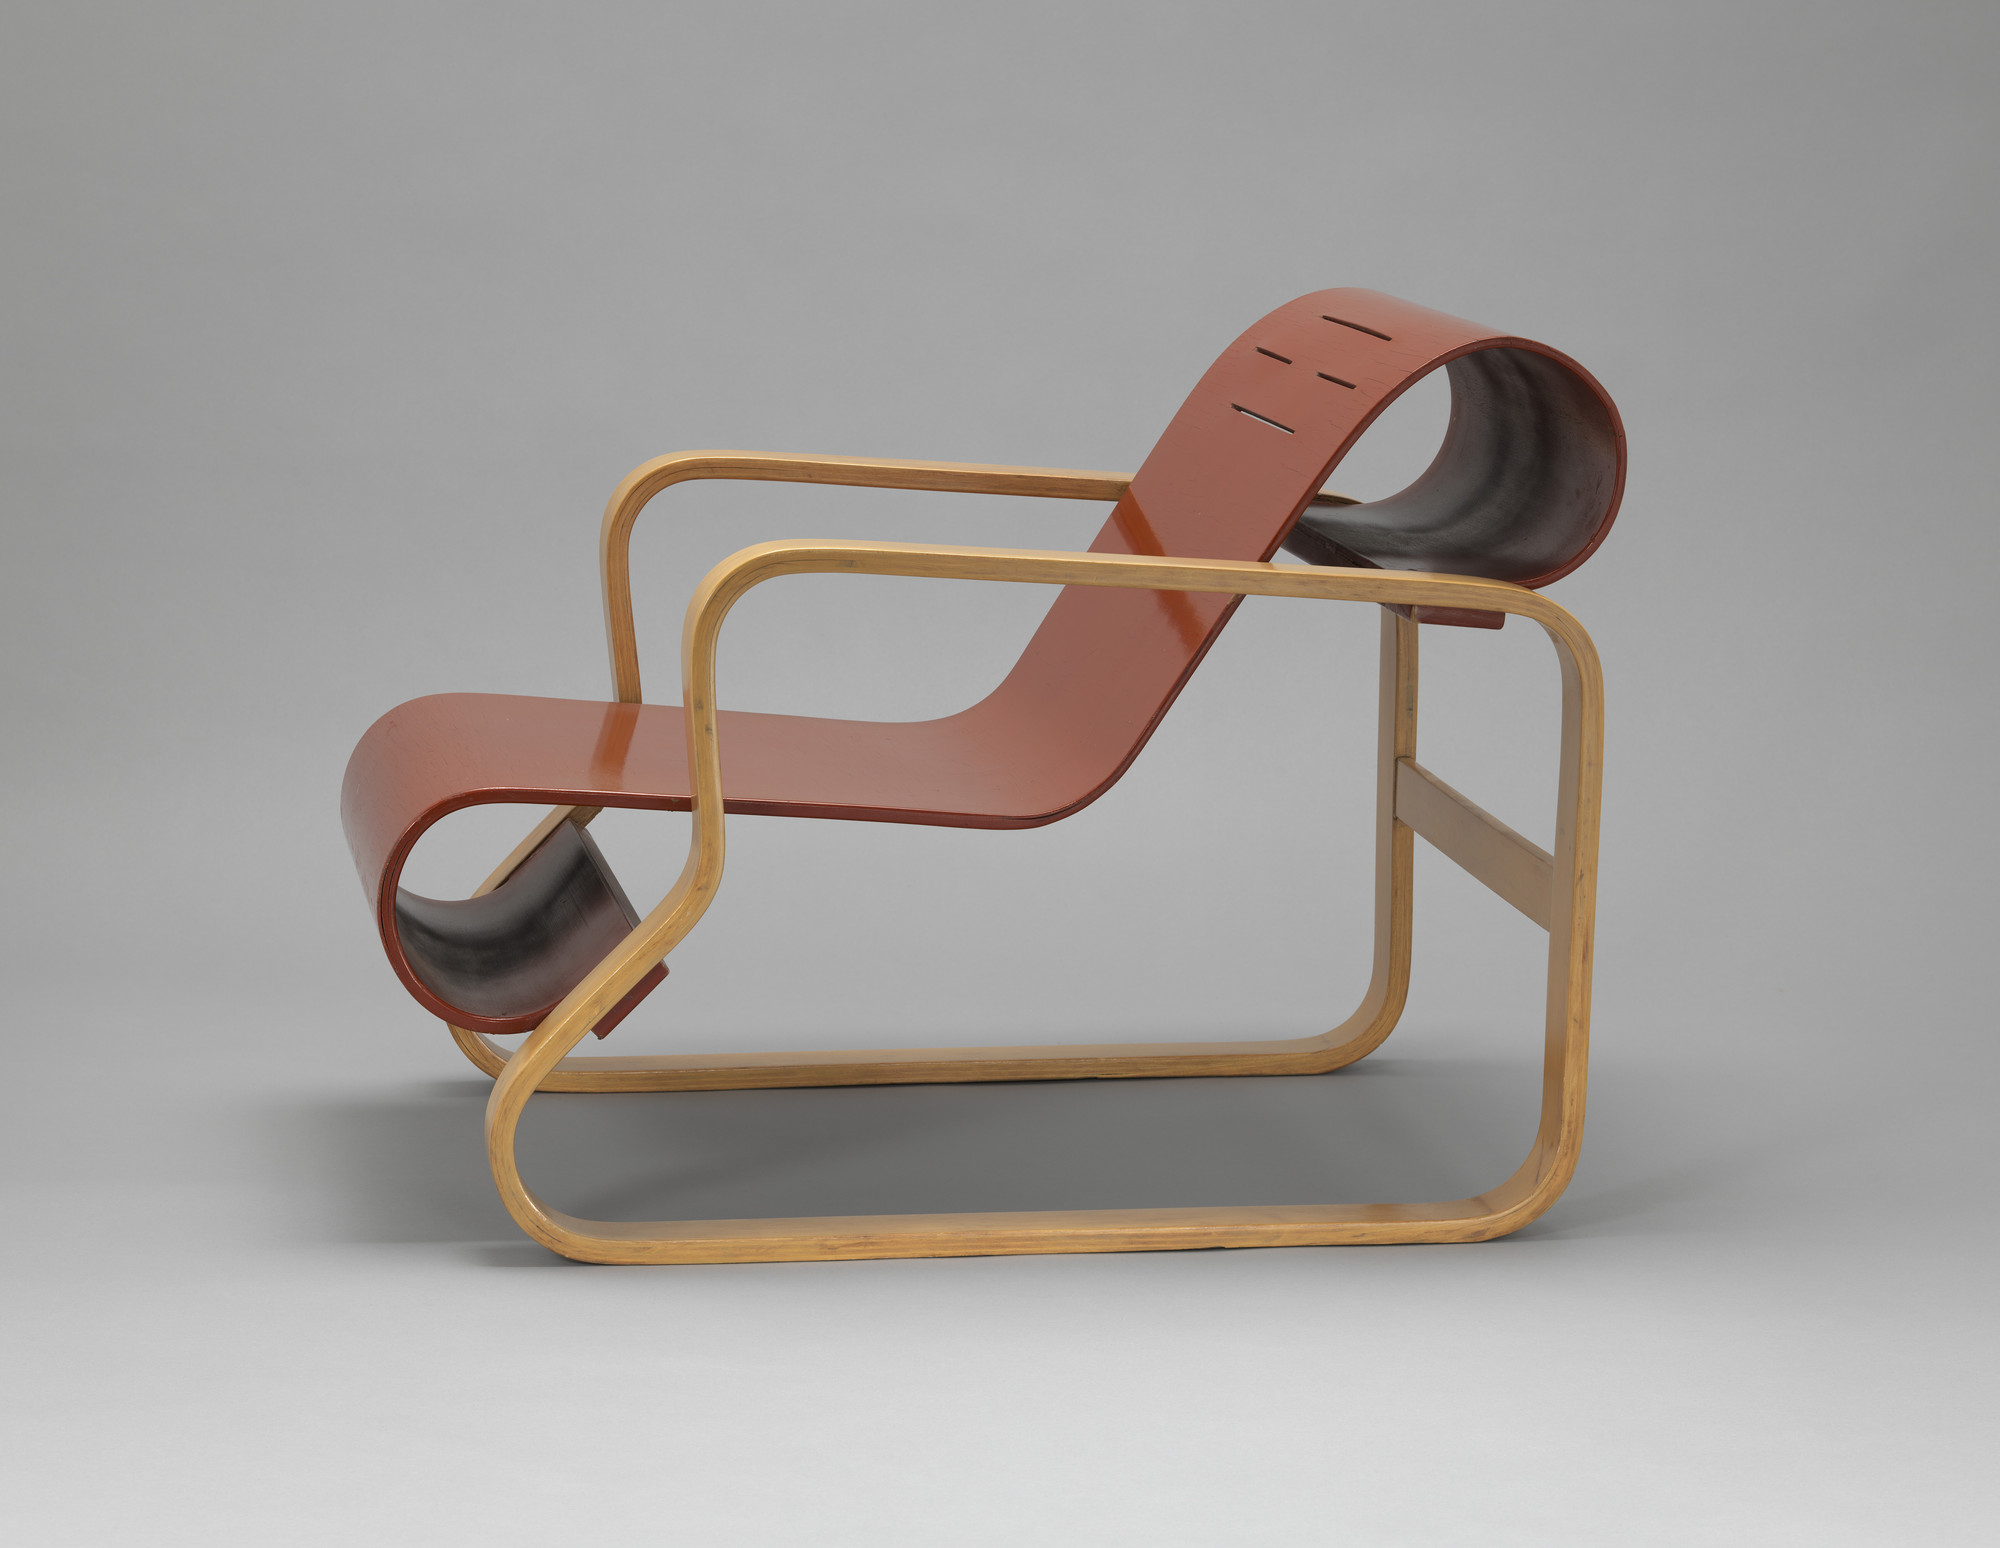 Alvar Aalto. Paimio Lounge Chair (model 41). 1931-1932